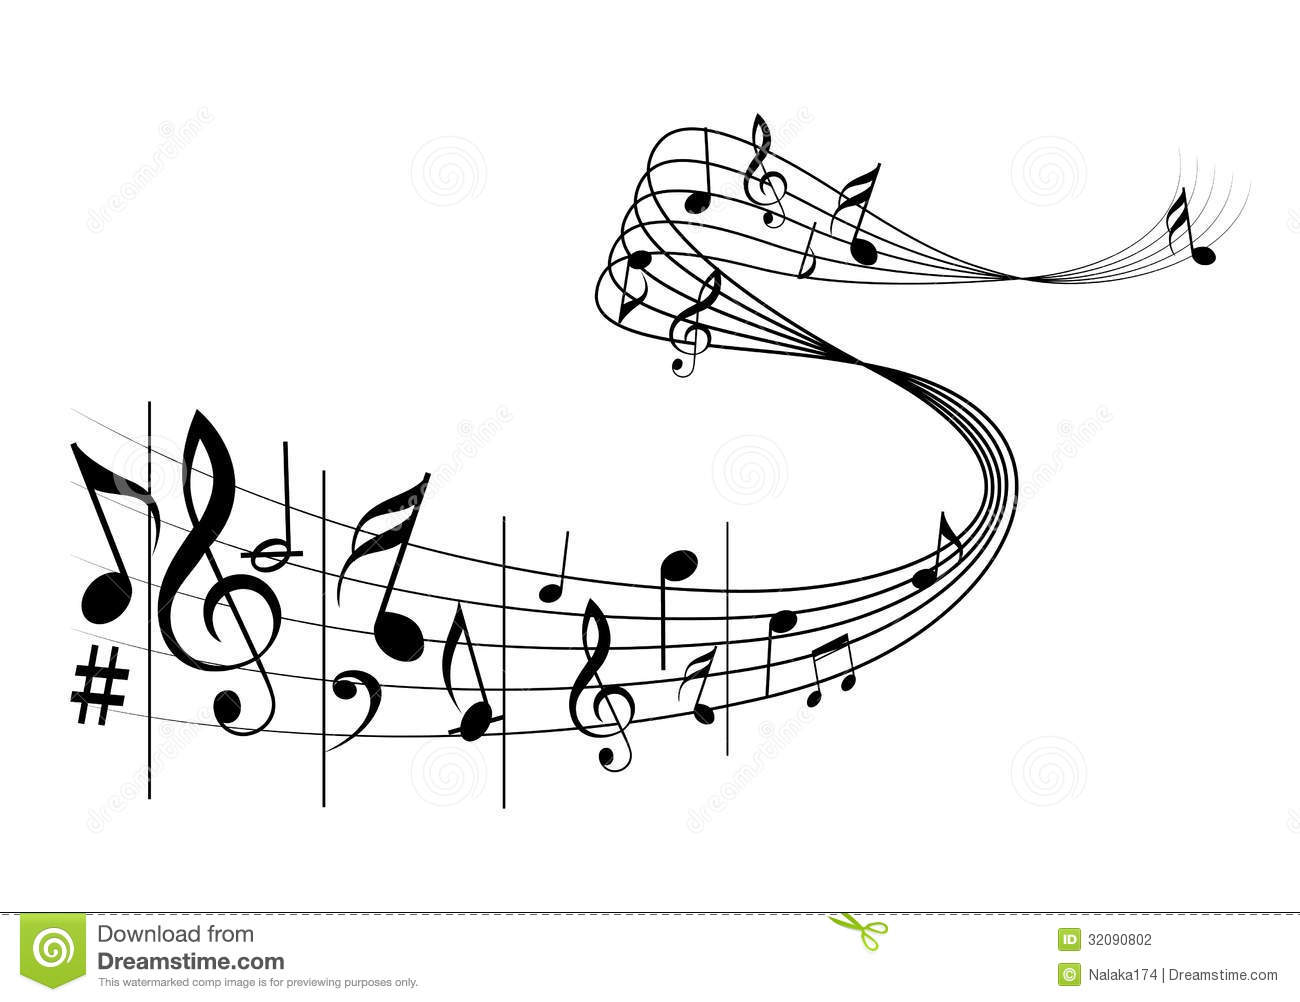 Instruments De Musique besides Music Notes 1 in addition Musical Instruments Clip Art Black And White together with Musical 20clipart 20music 20symbol additionally Music Notes Clipart. on vintage musical instrument illustration